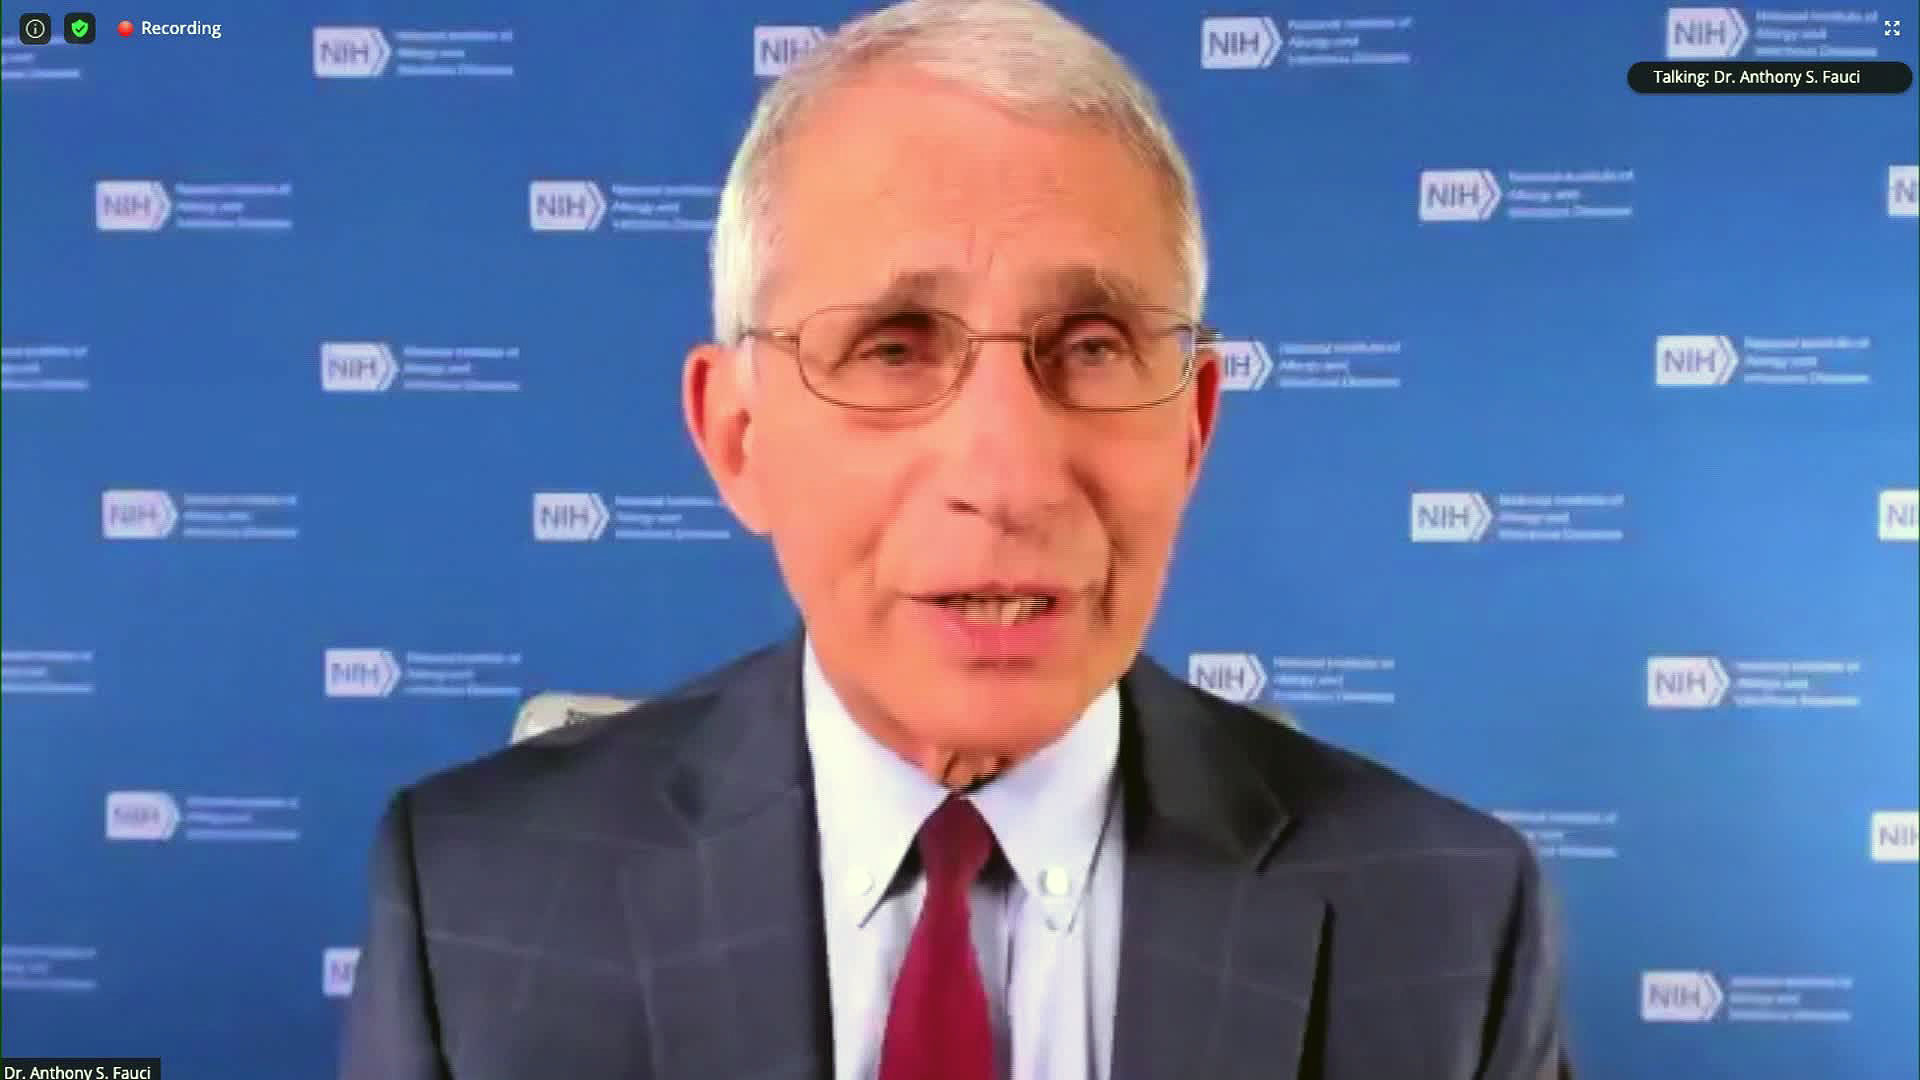 Dr. Anthony Fauci speaks Tuesday during an event organized by Research! America.